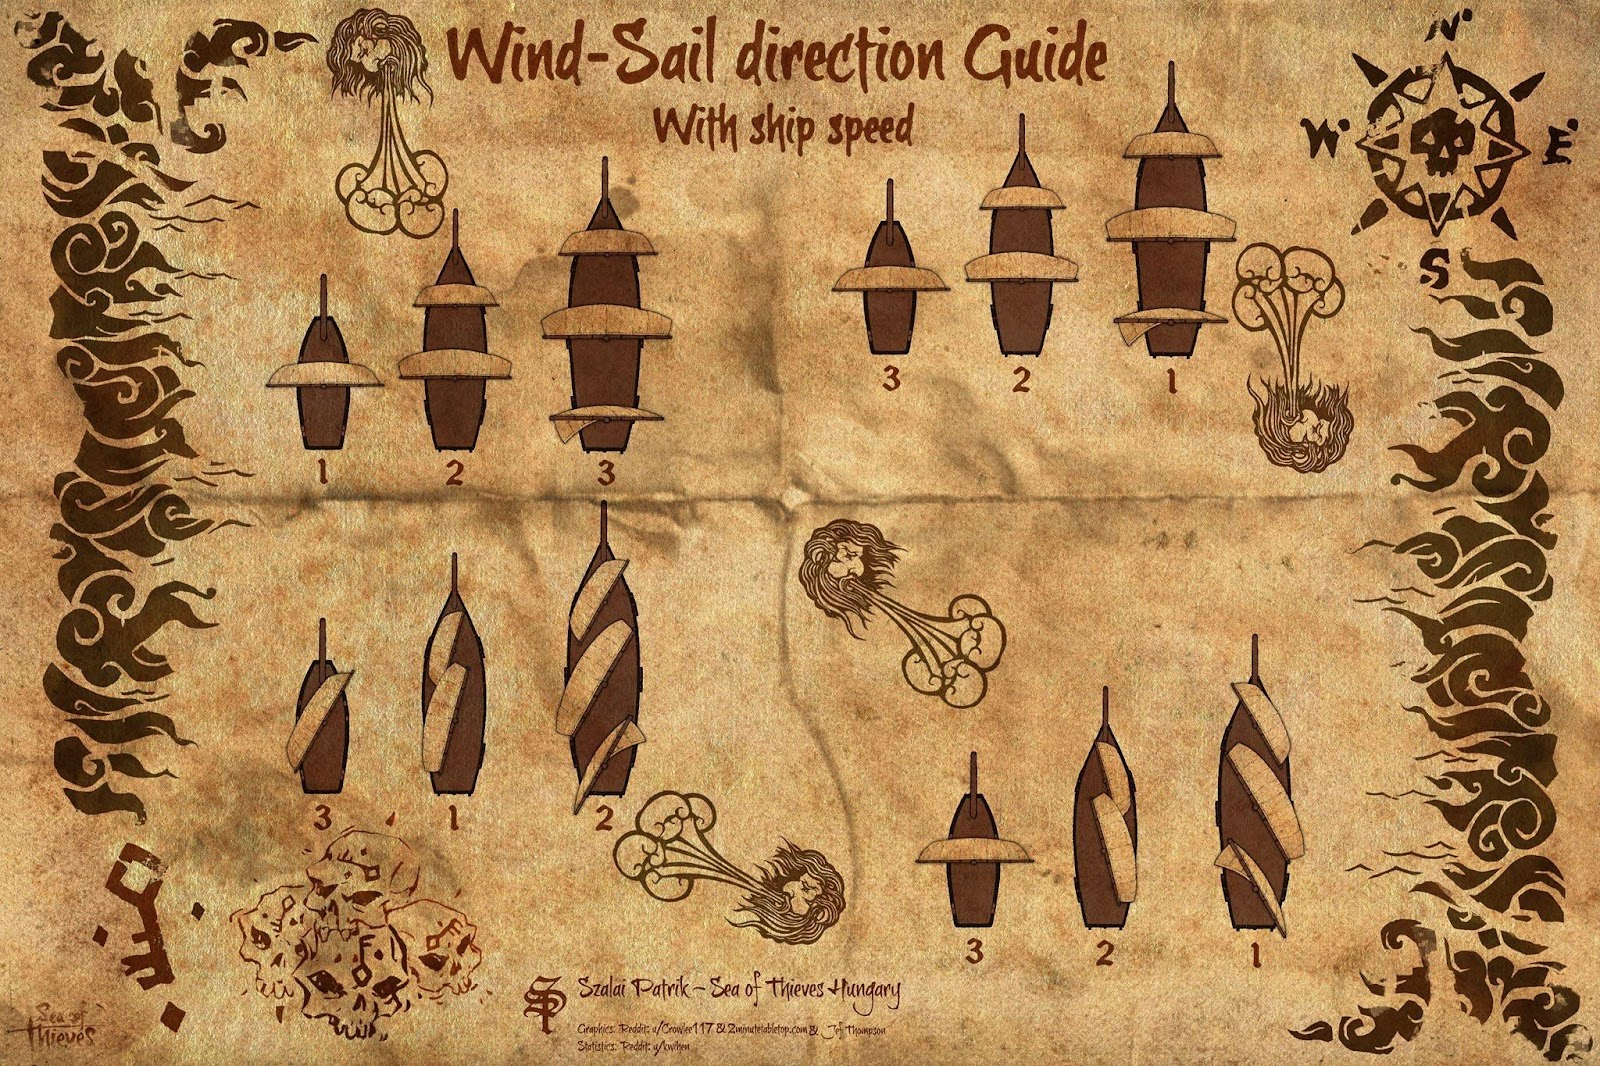 Sea of thieves wind sail direction guide